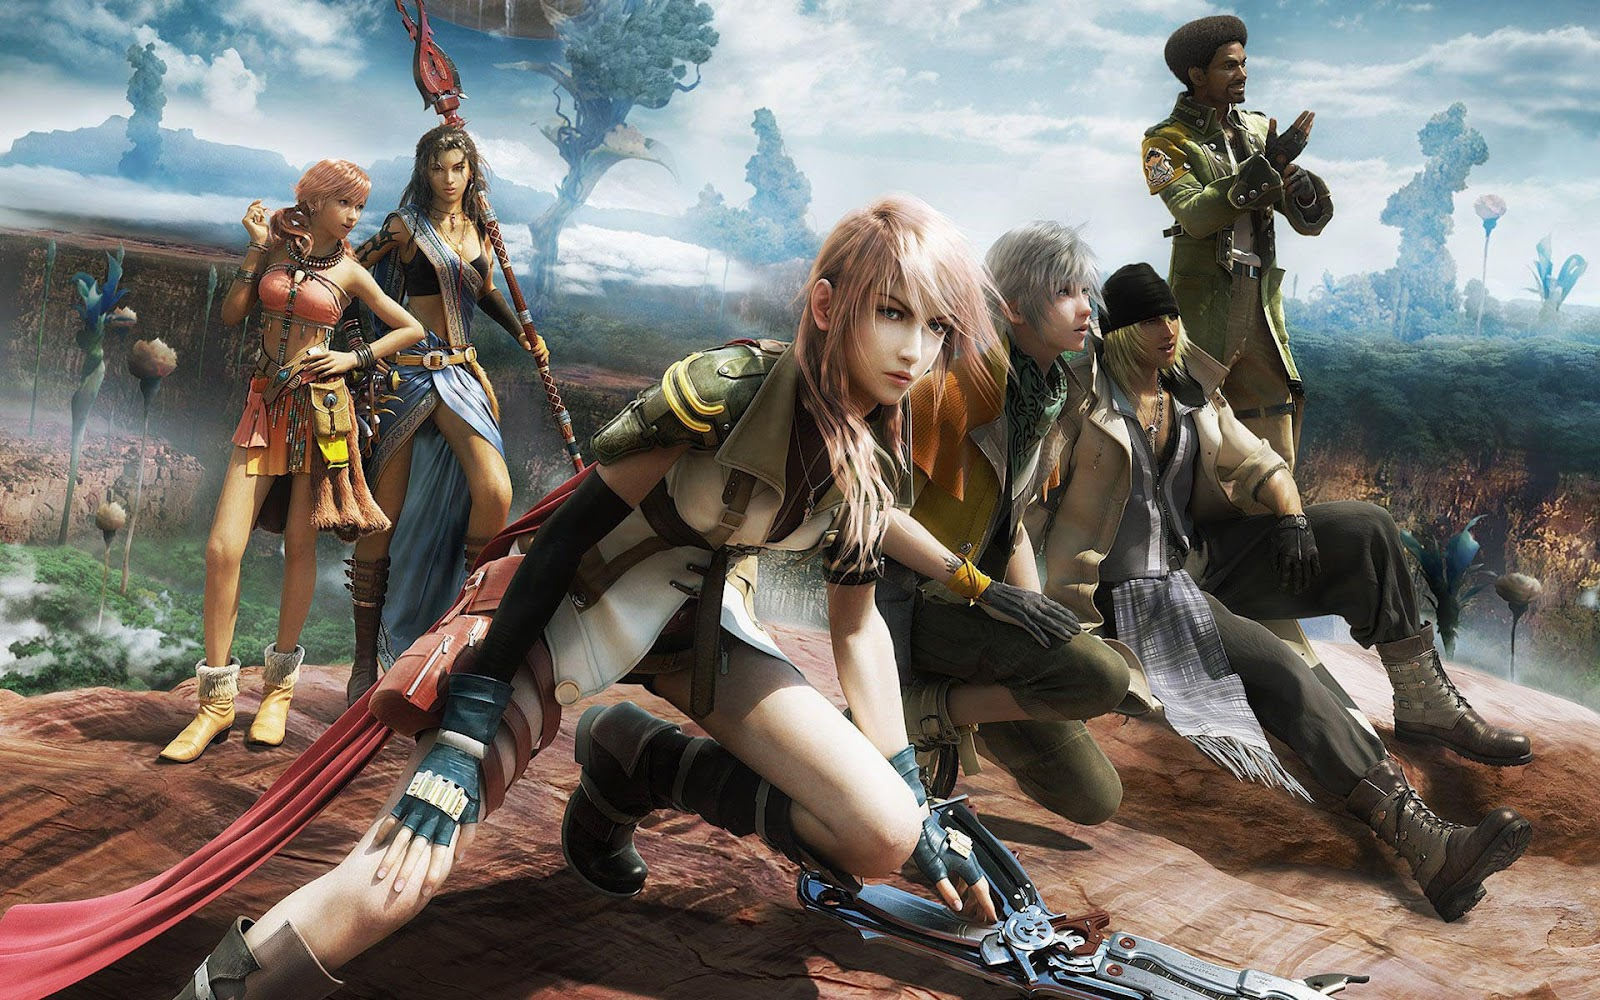 hd game wallpaper final fantasy xiii hd final fantasy achtergrondjpg 1600x1000